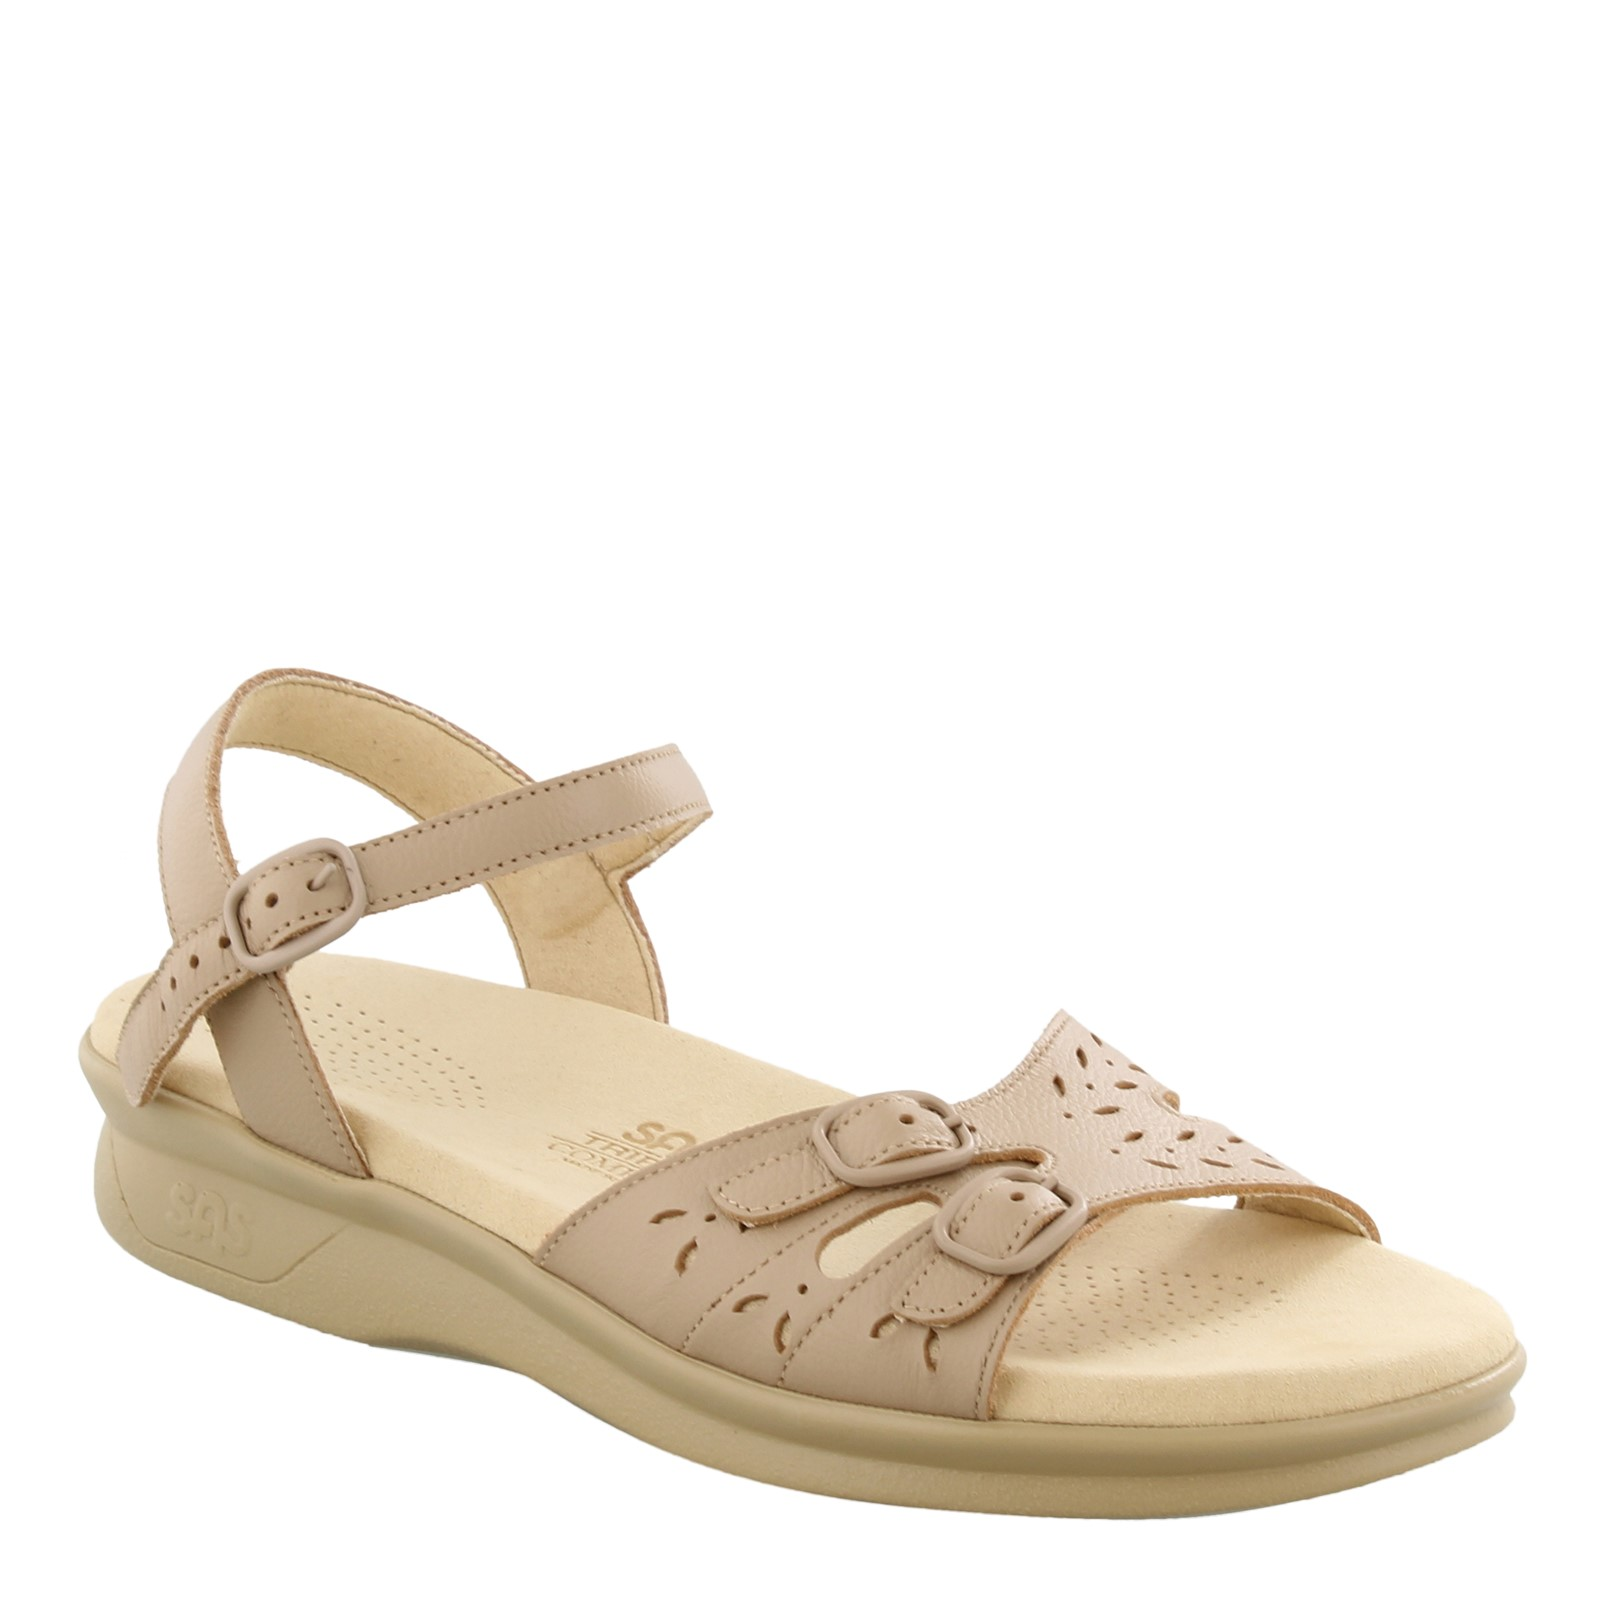 Women's SAS, Duo Sandal